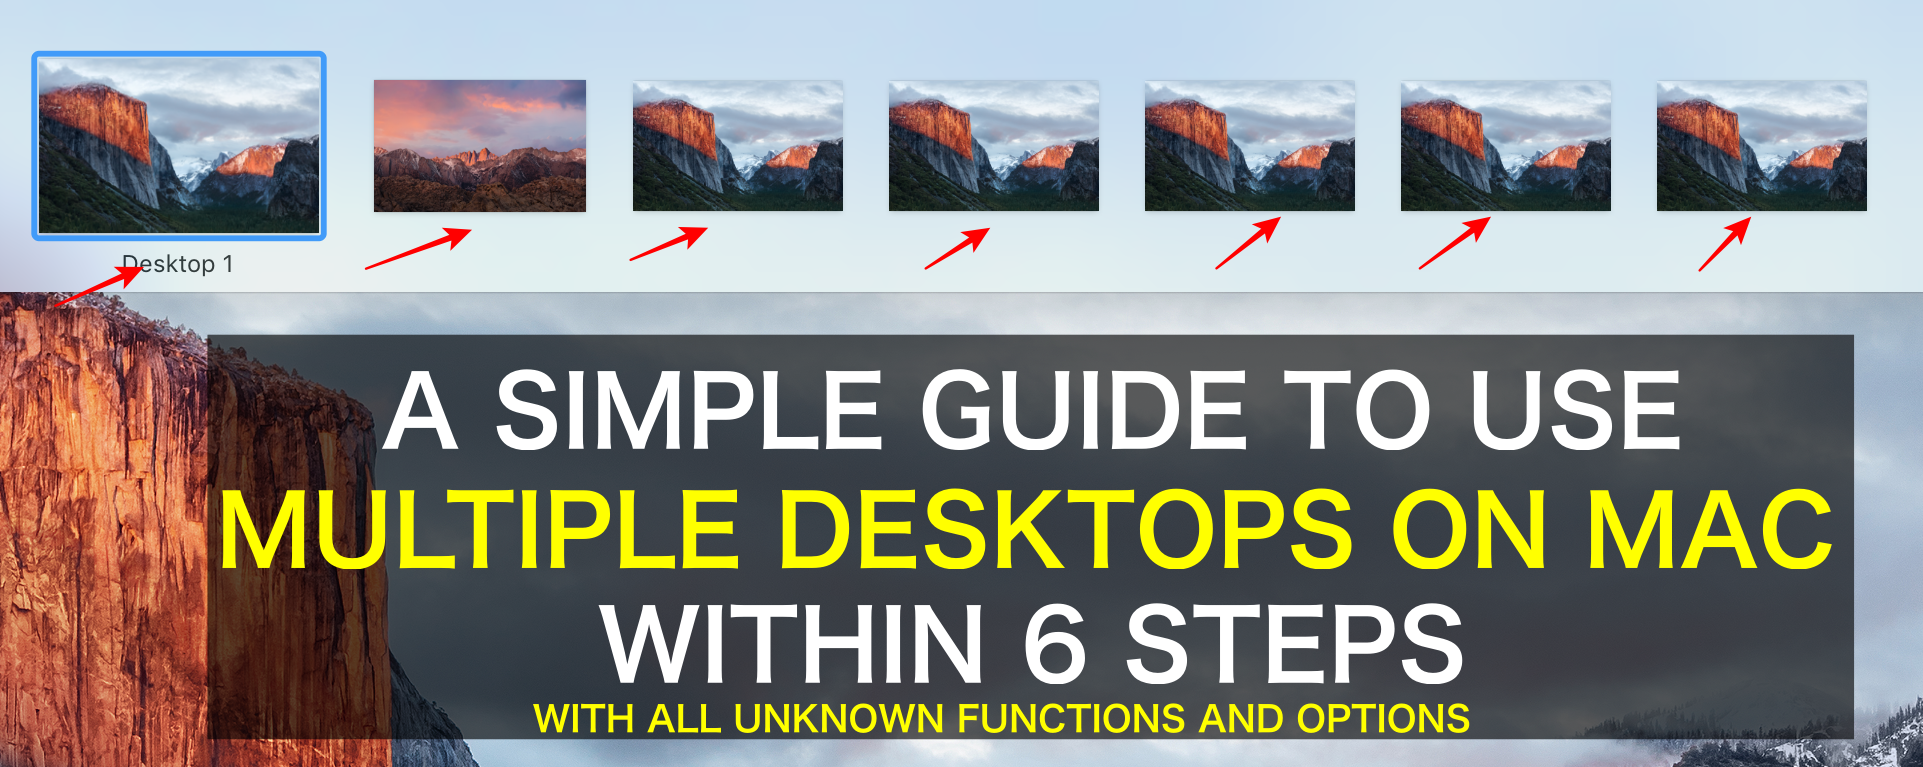 guide-to-use-multiple-desktops-on-mac-within-6-steps-unknown-functions-features